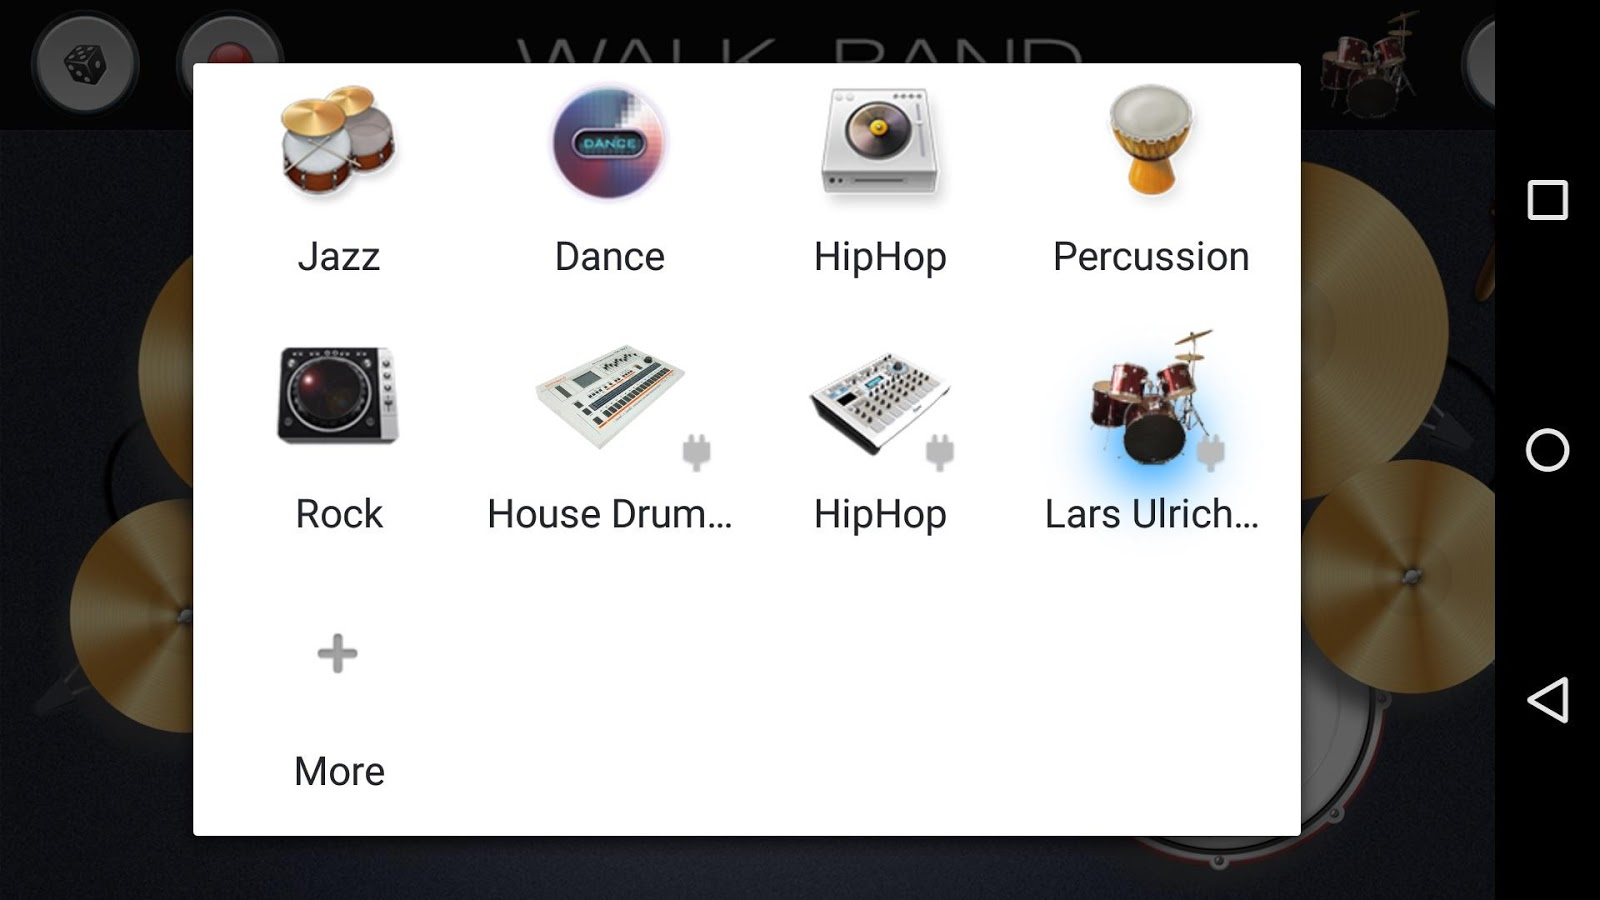 House Kit Sound Effect Plug-in 2 0 APK Download - Android